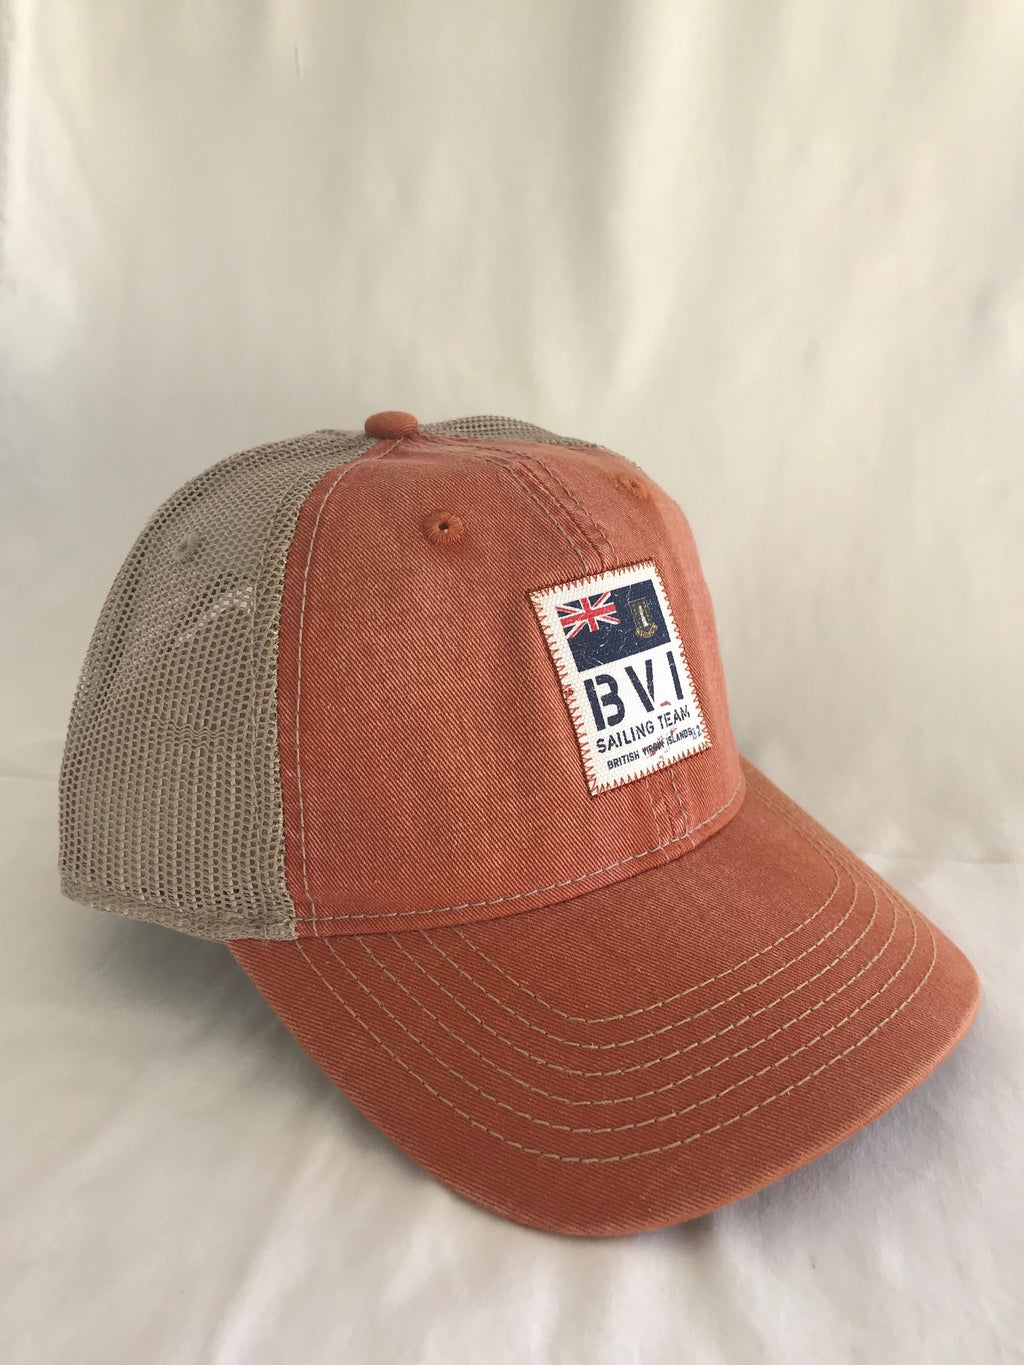 BVI Sailing Team Trucker Cap - Rust